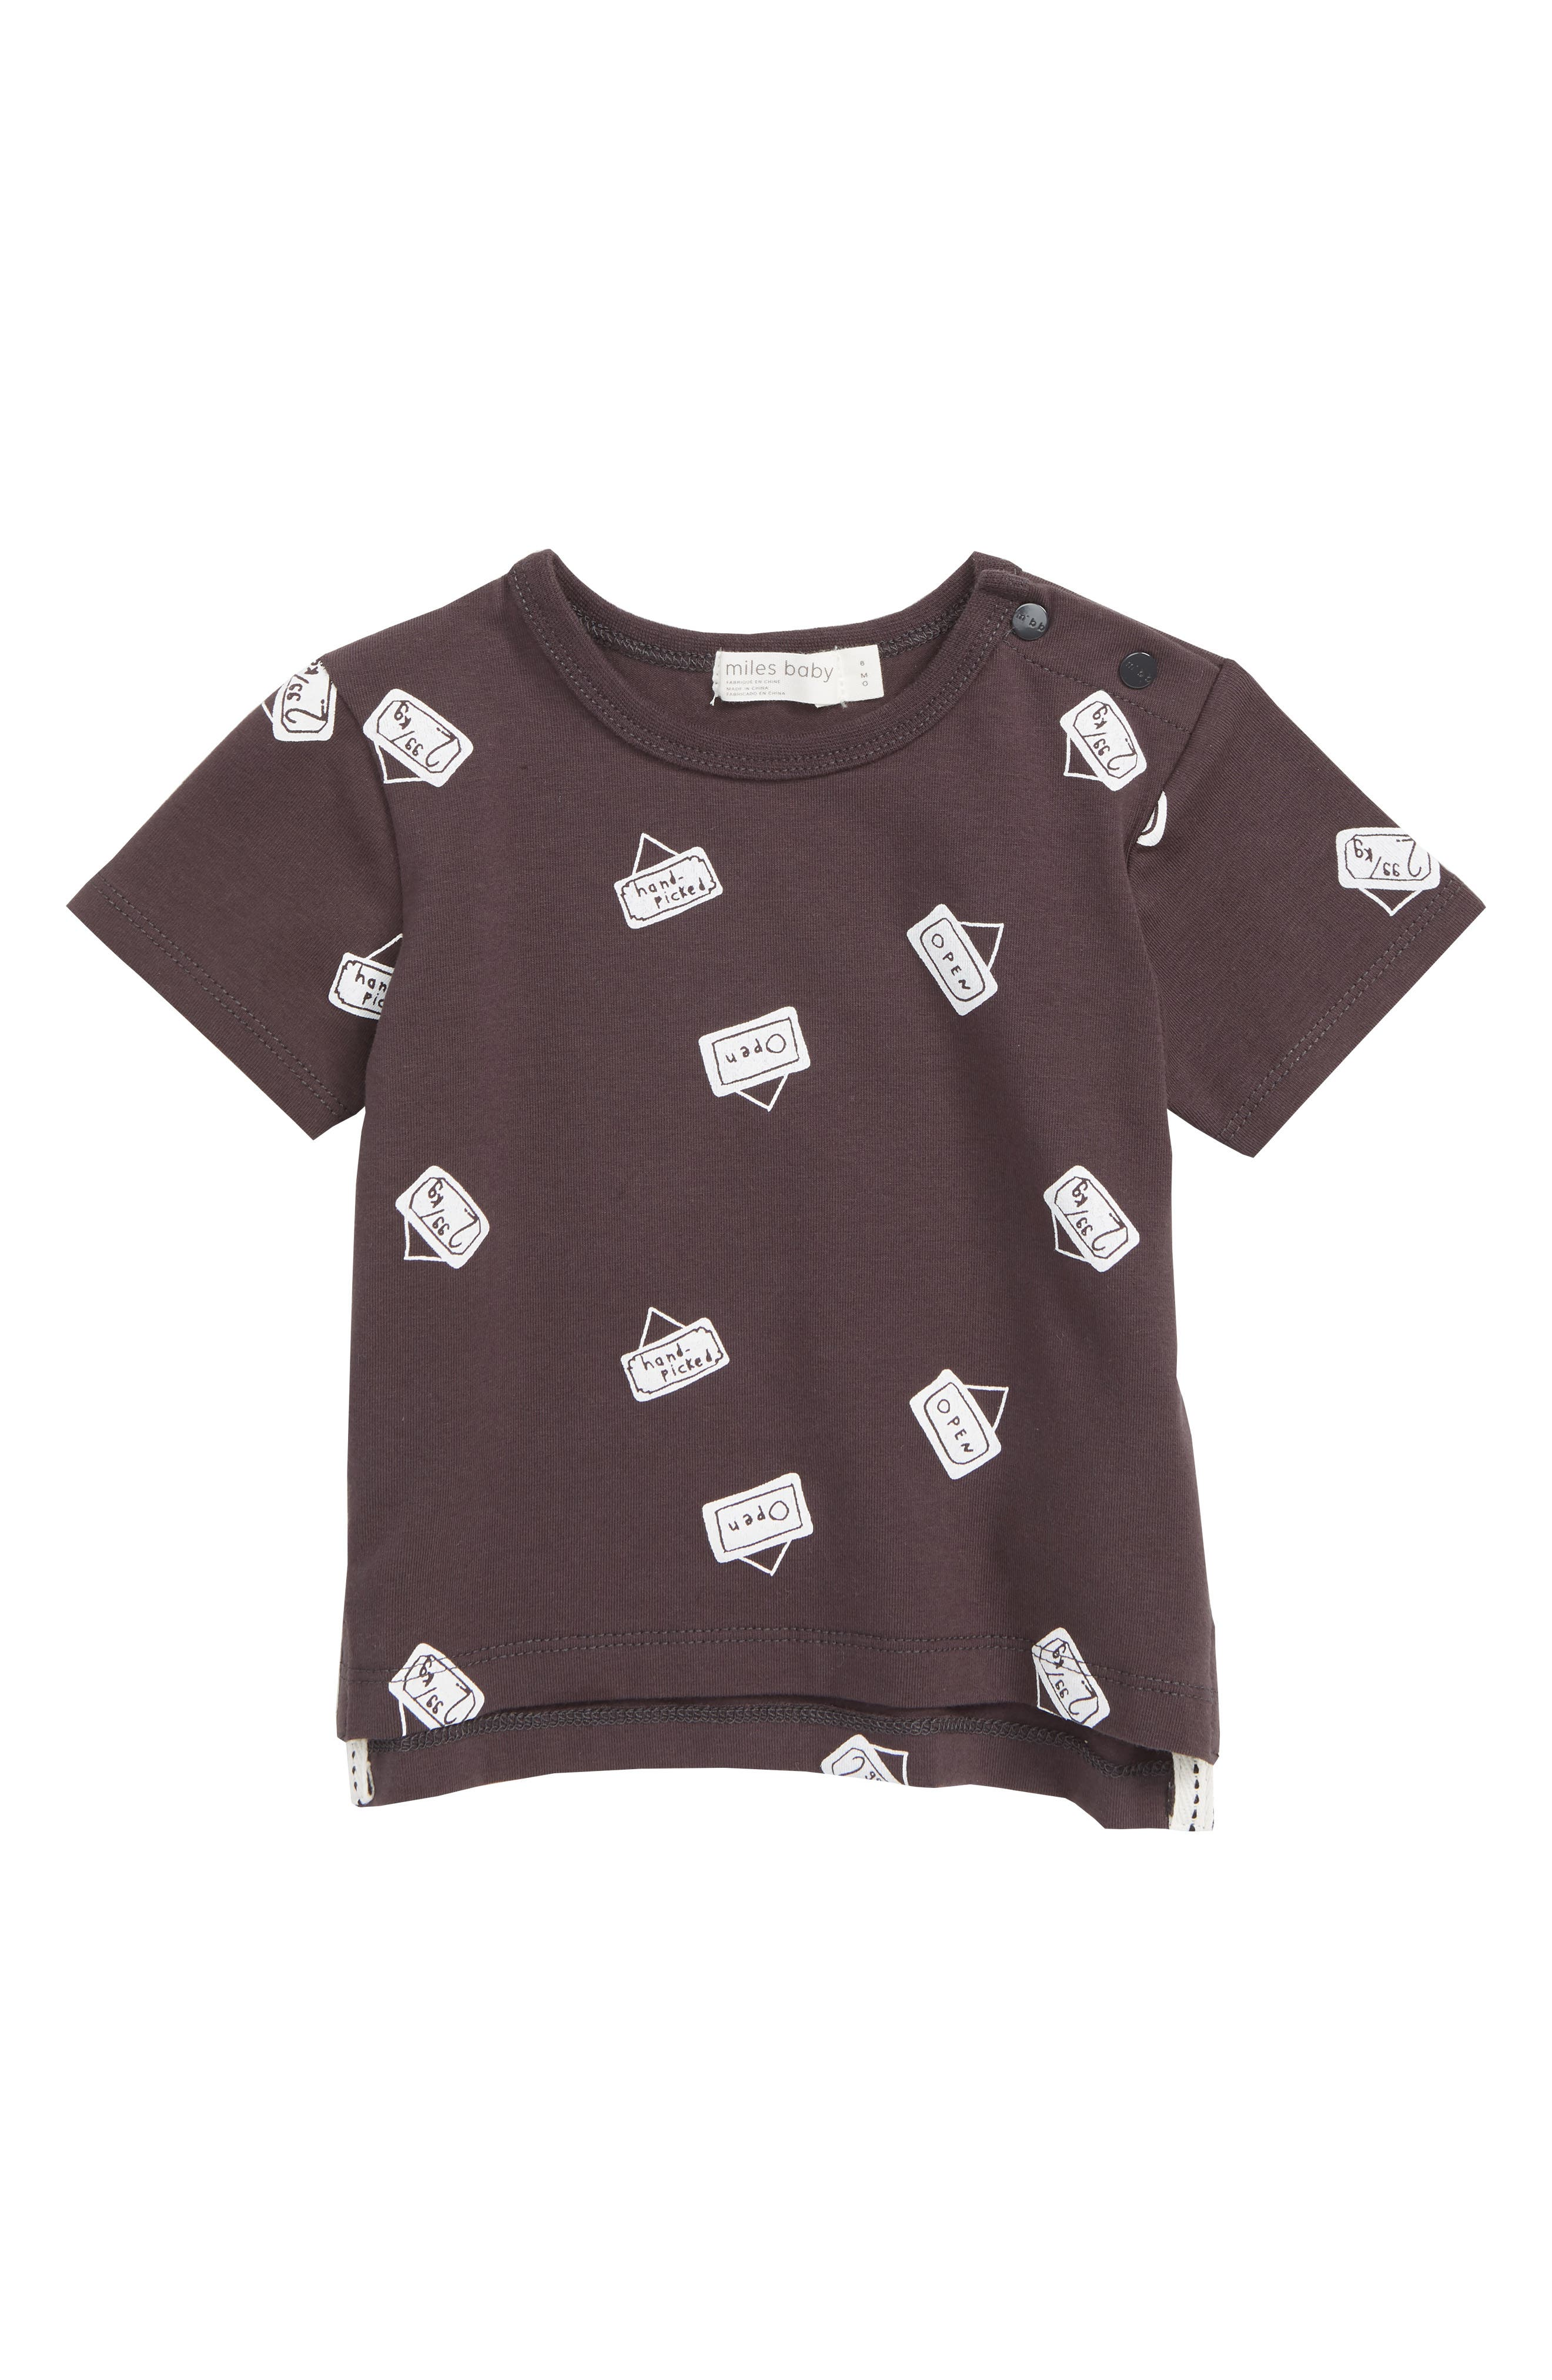 Miles Baby Signs Graphic T-Shirt